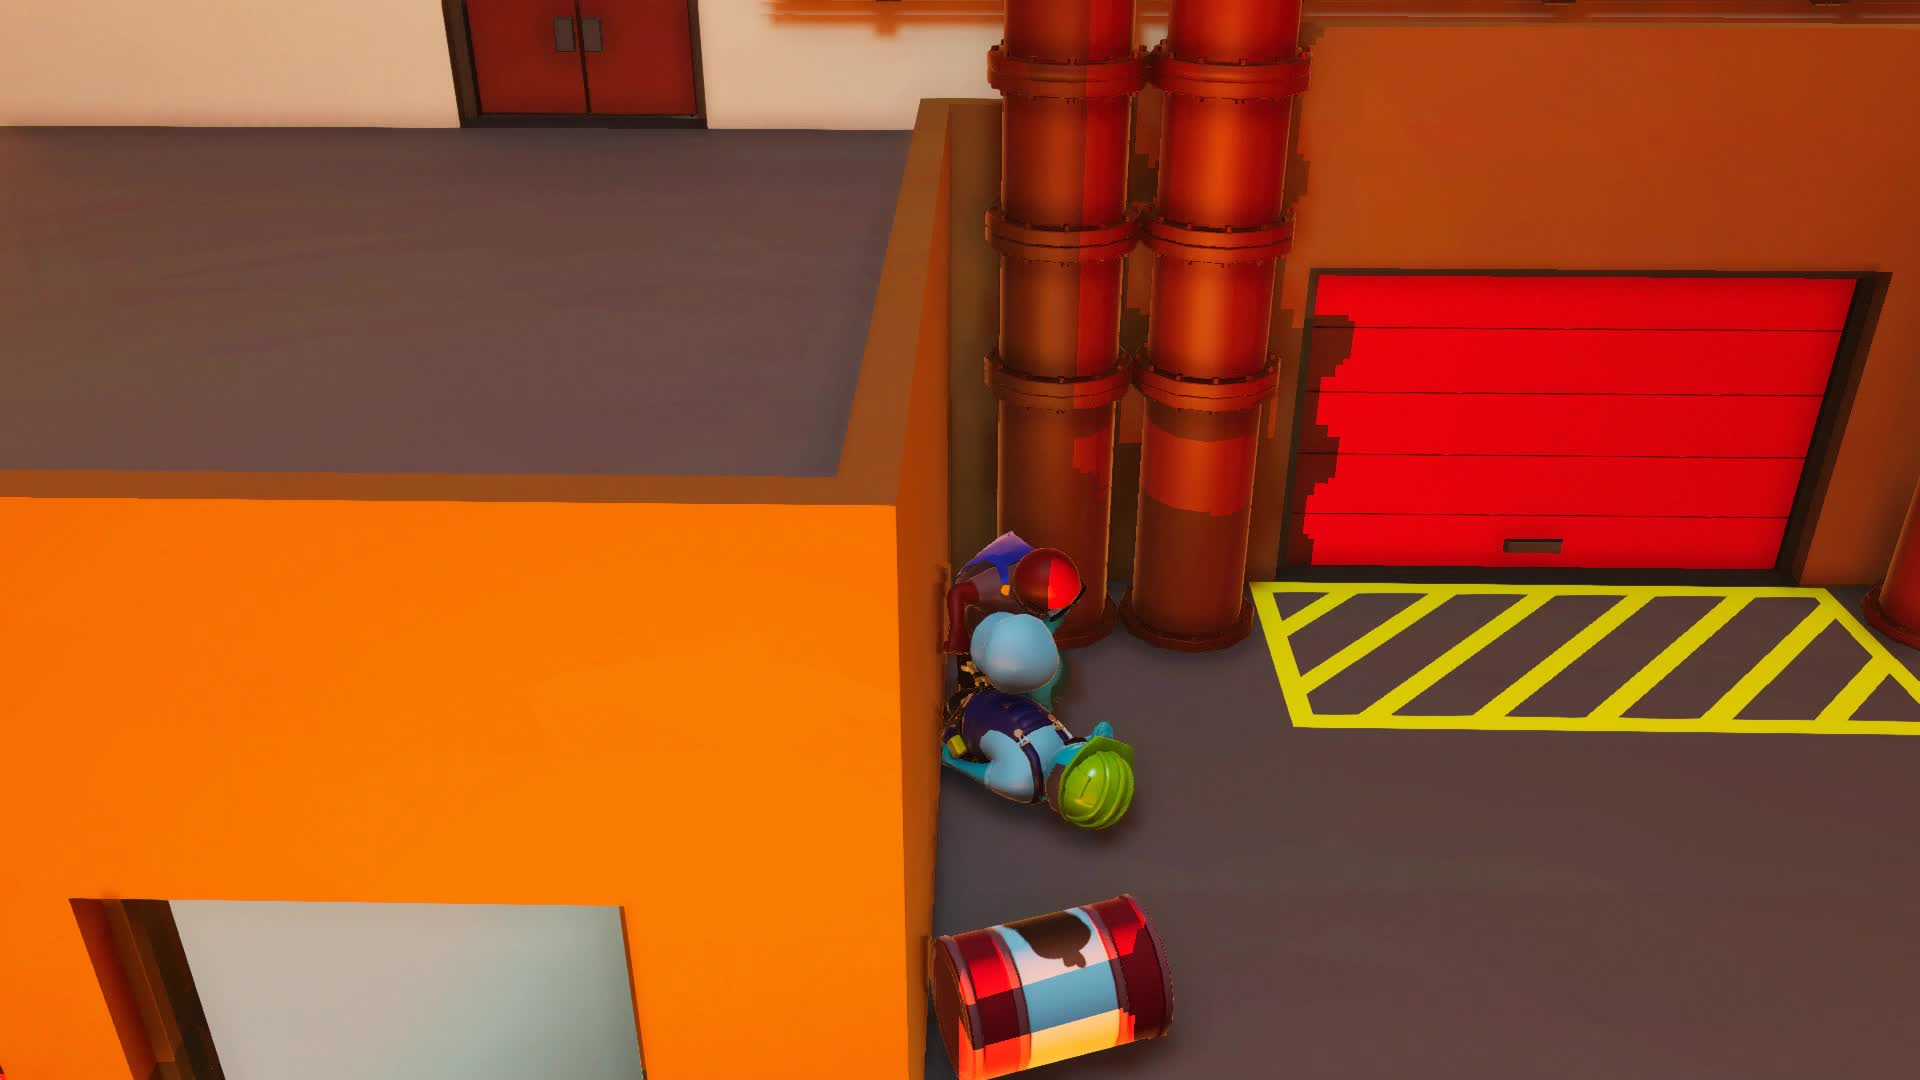 gangbeasts, vlc-record-2018-02-17-20h50m33s-Gang Beasts 02.13.2018 - 01.54.52.05.mp4- GIFs